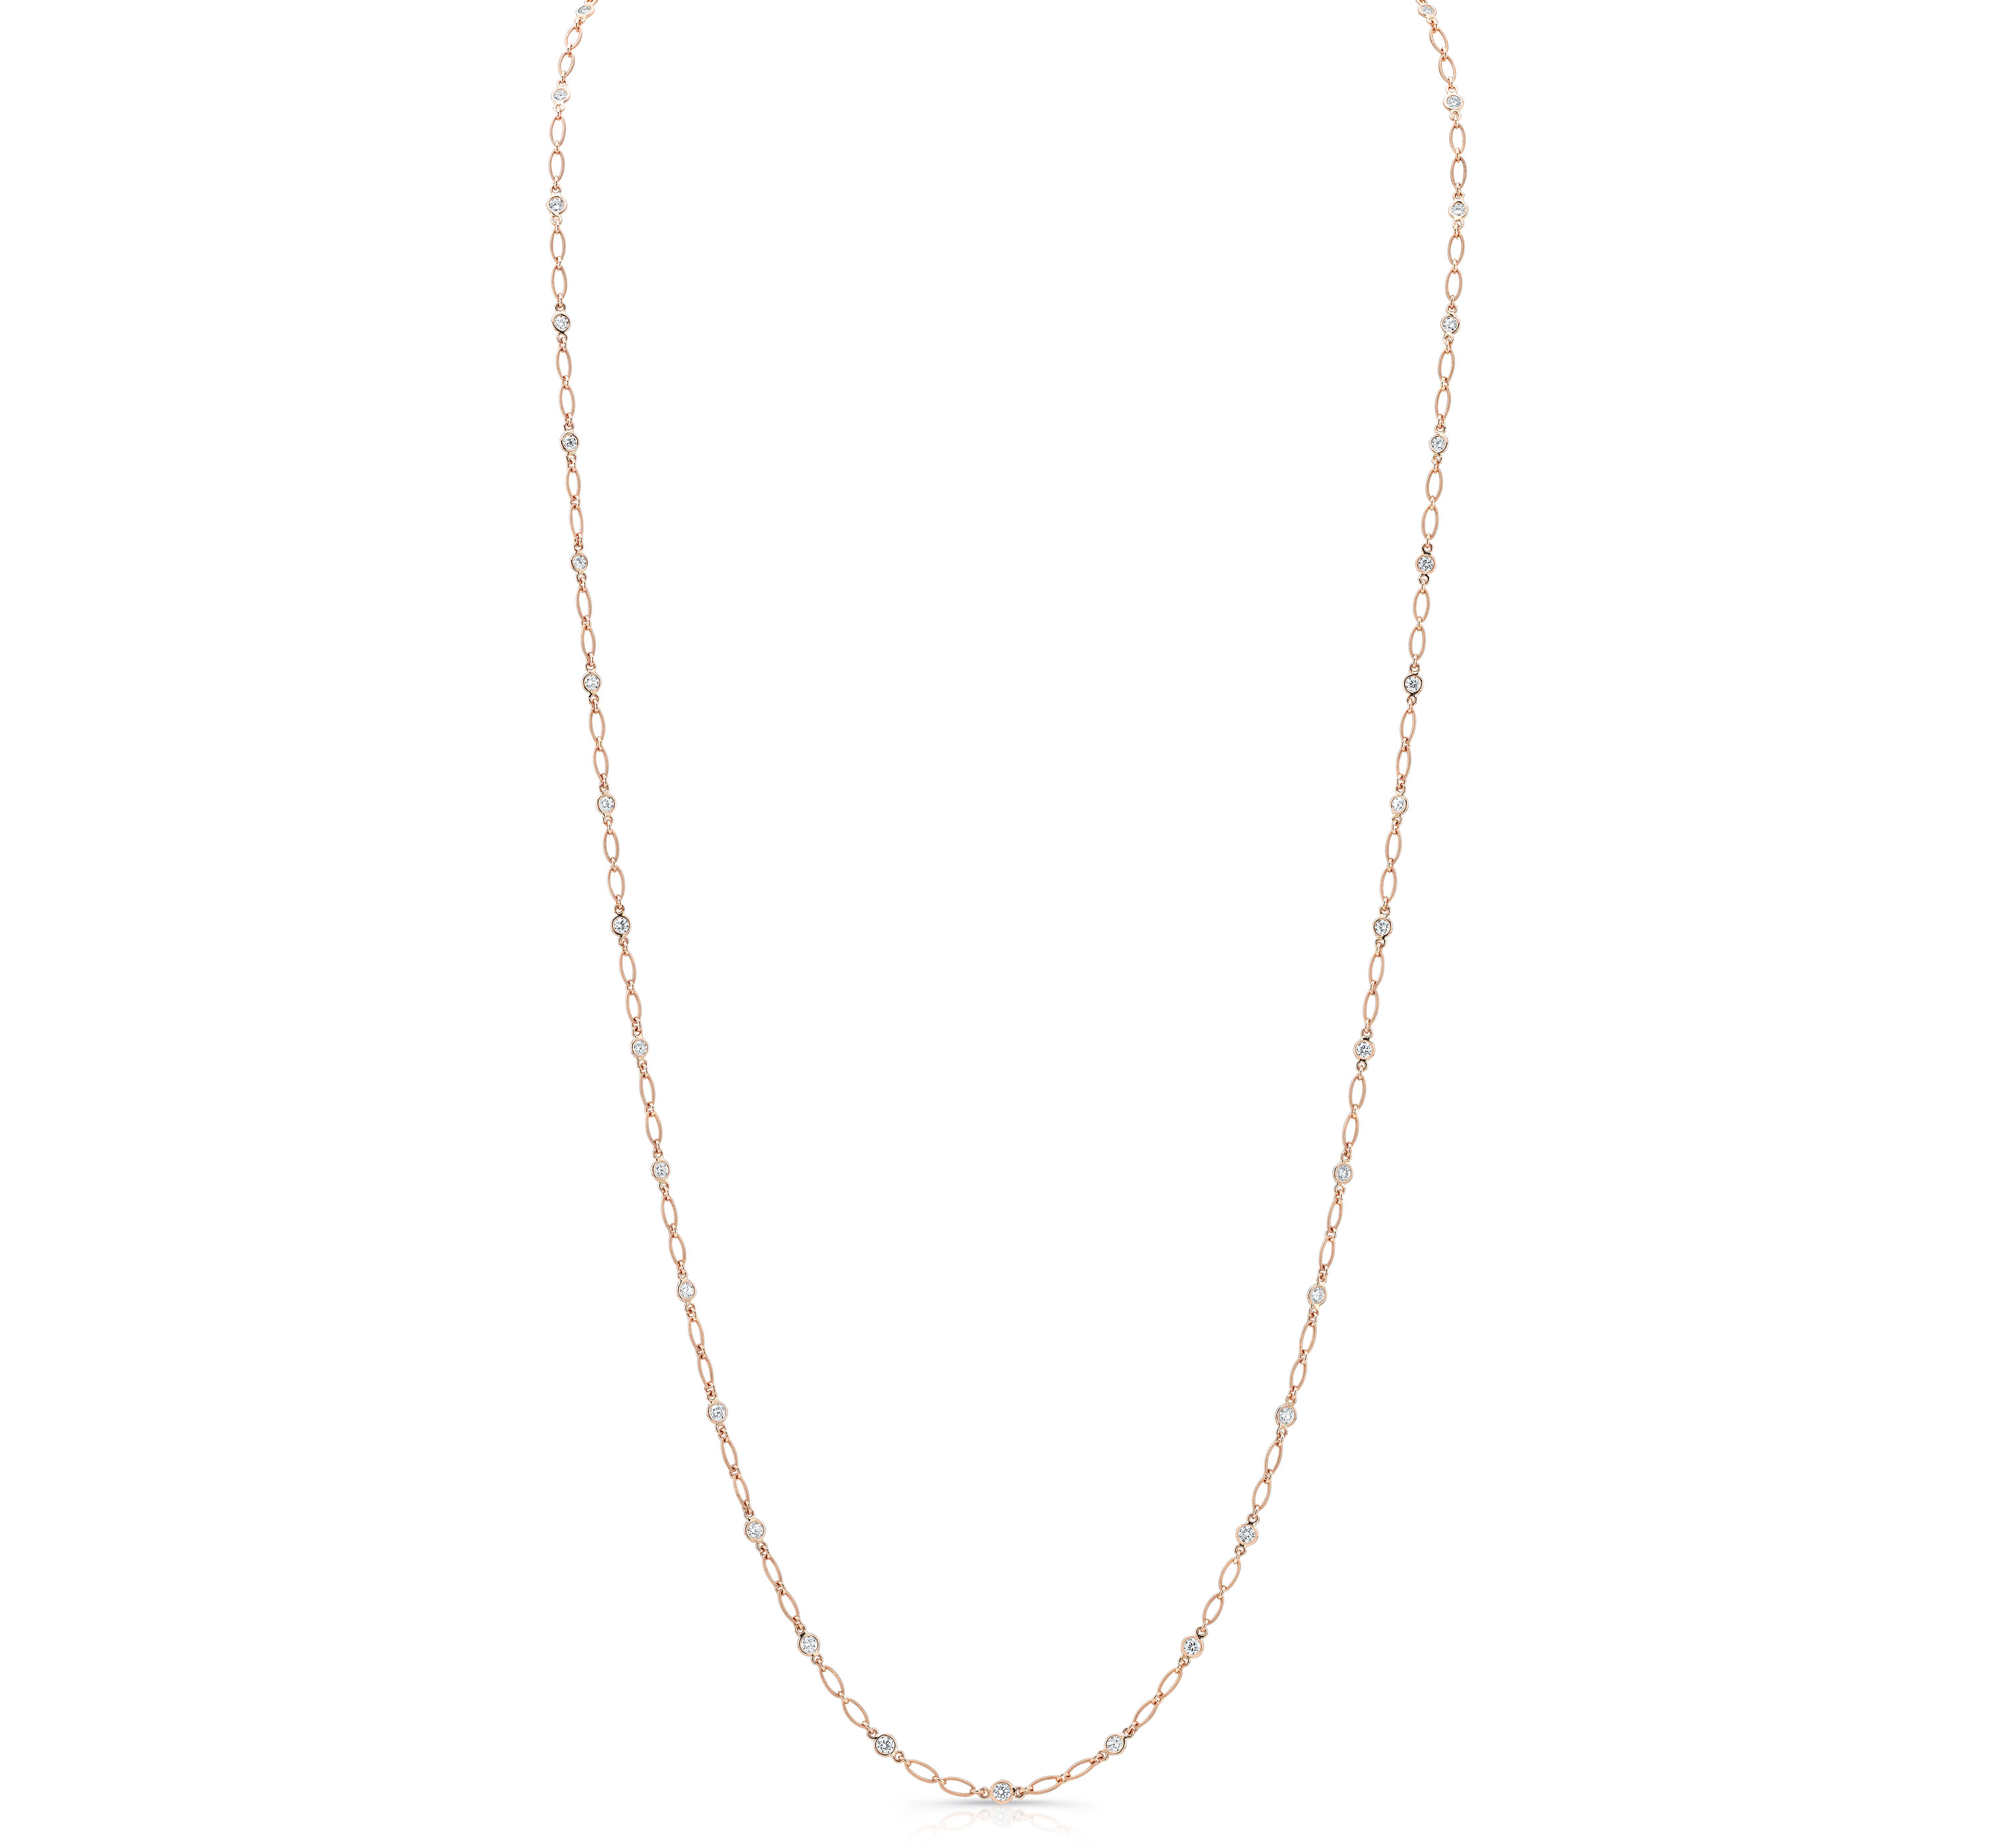 Norman Silverman long diamond necklace | JCK On Your Market